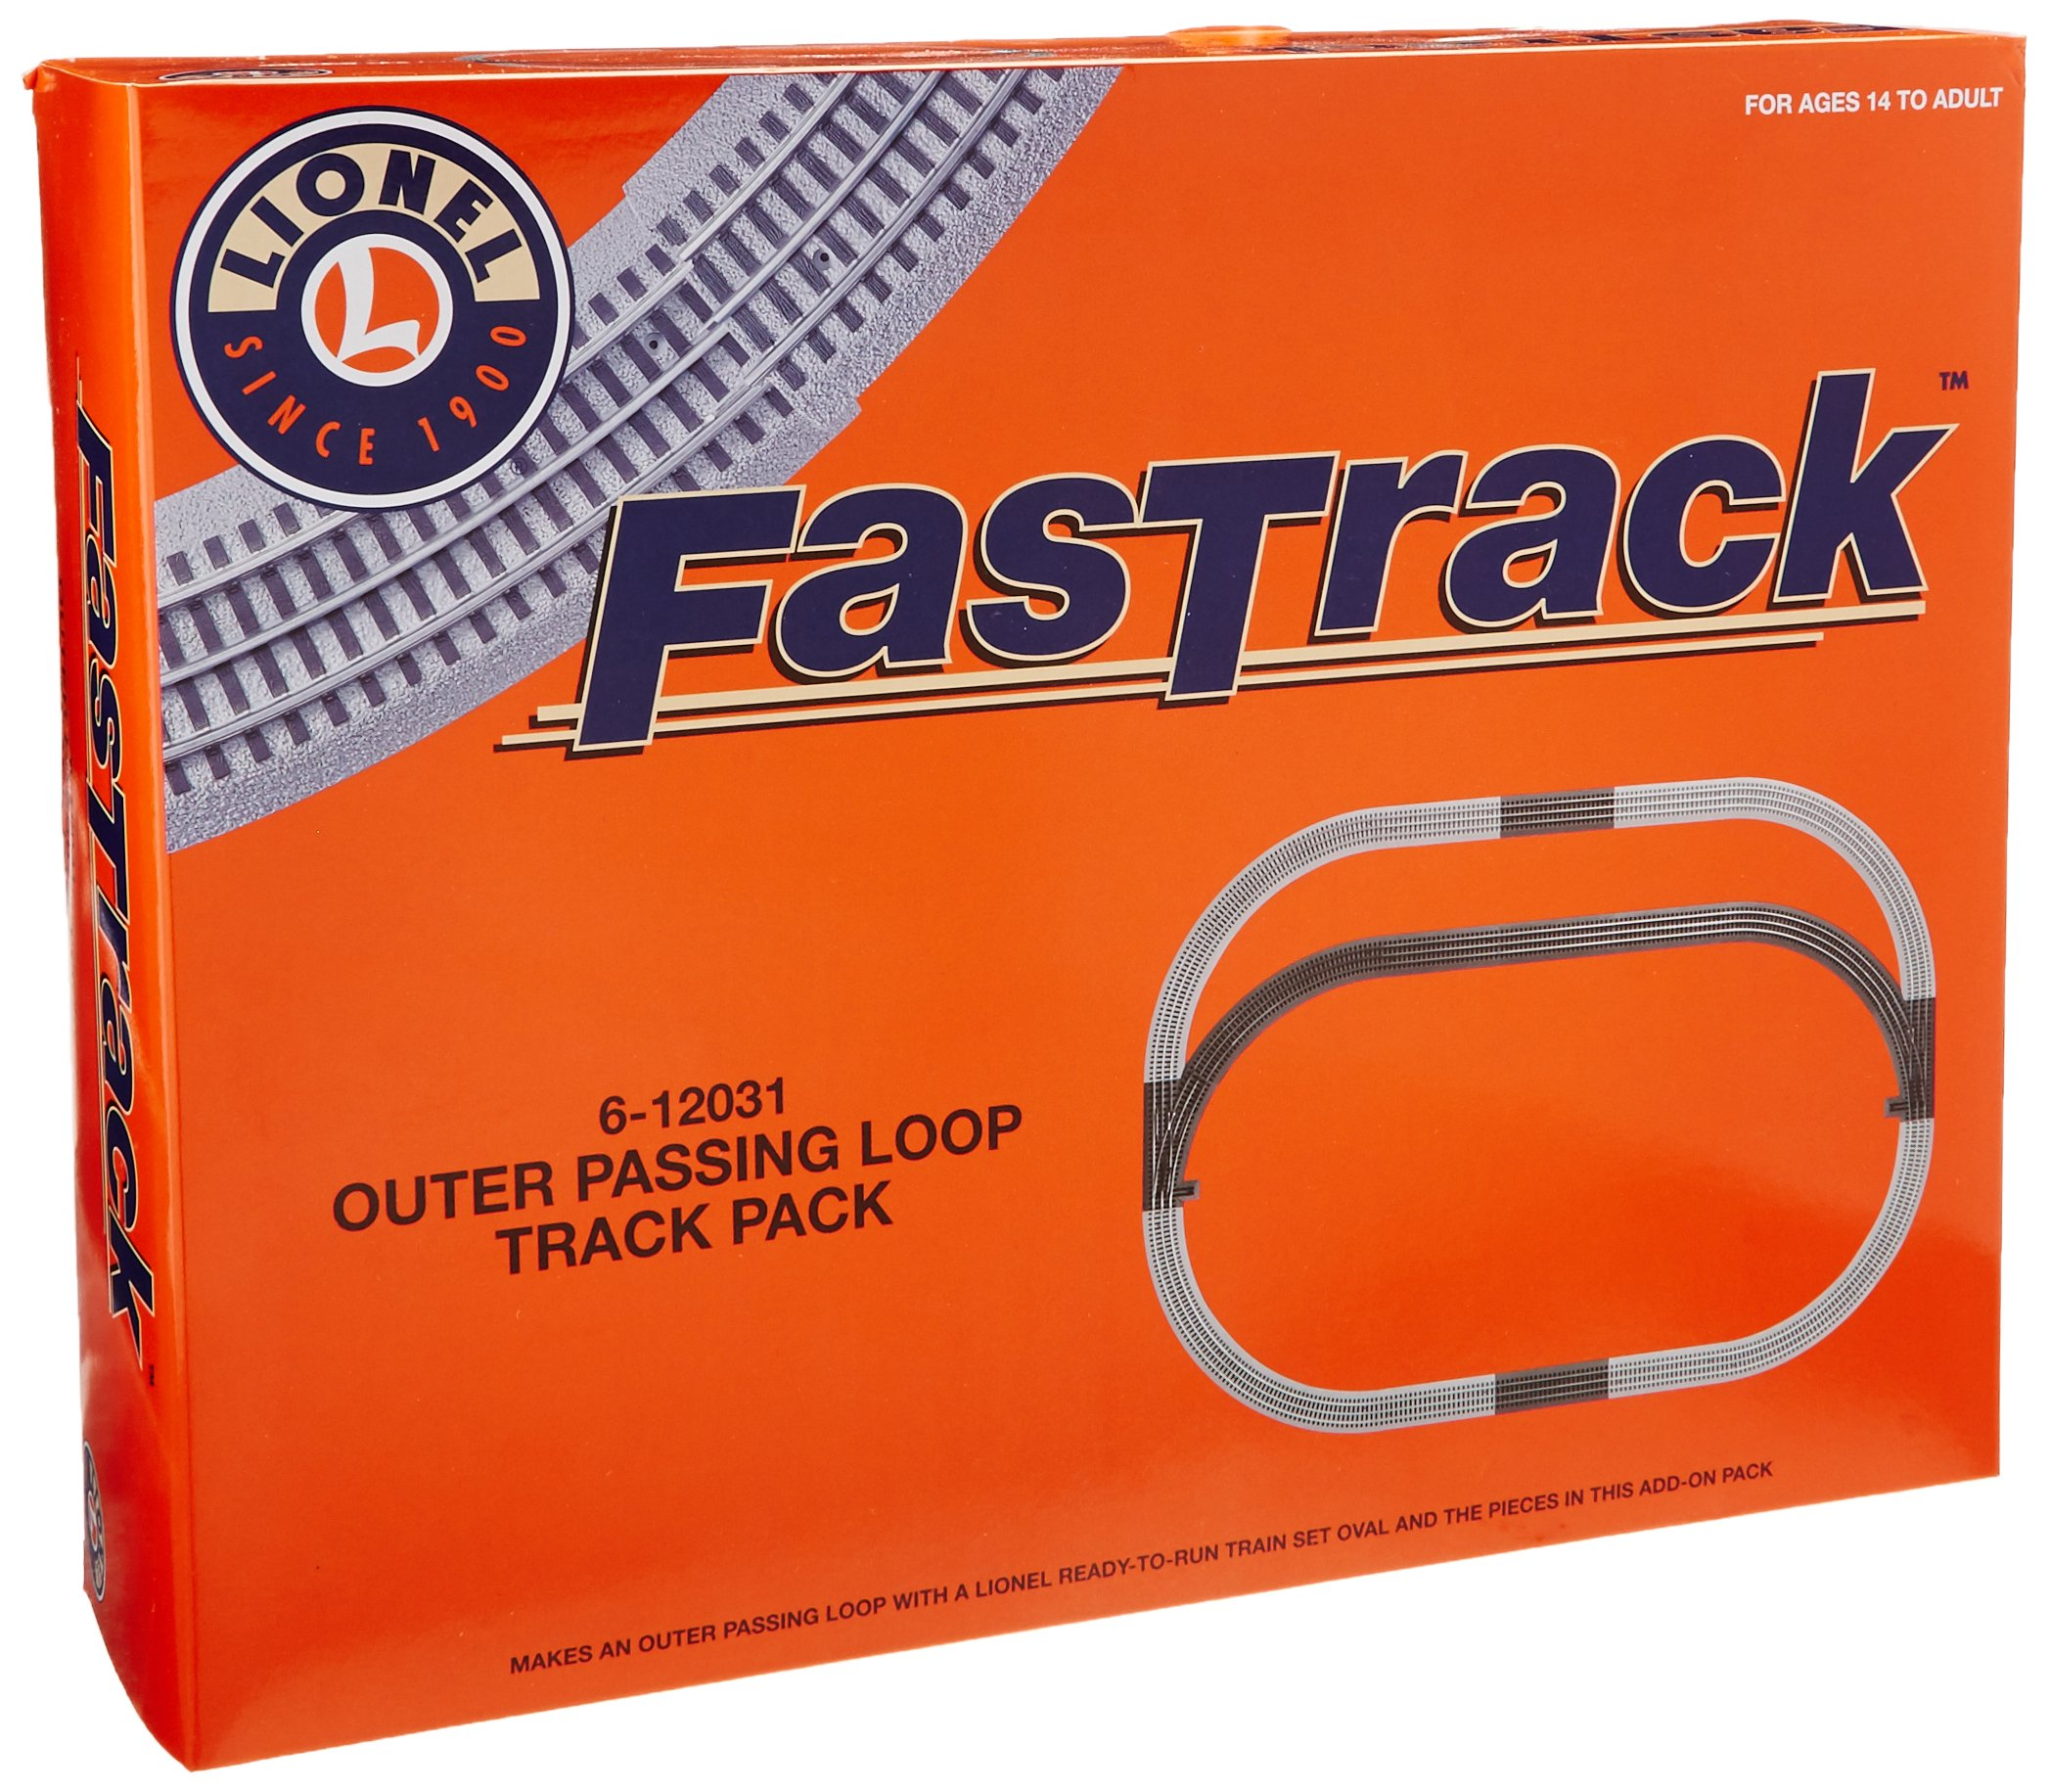 Lionel FasTrack Outer Passing Loop Add-on Pack